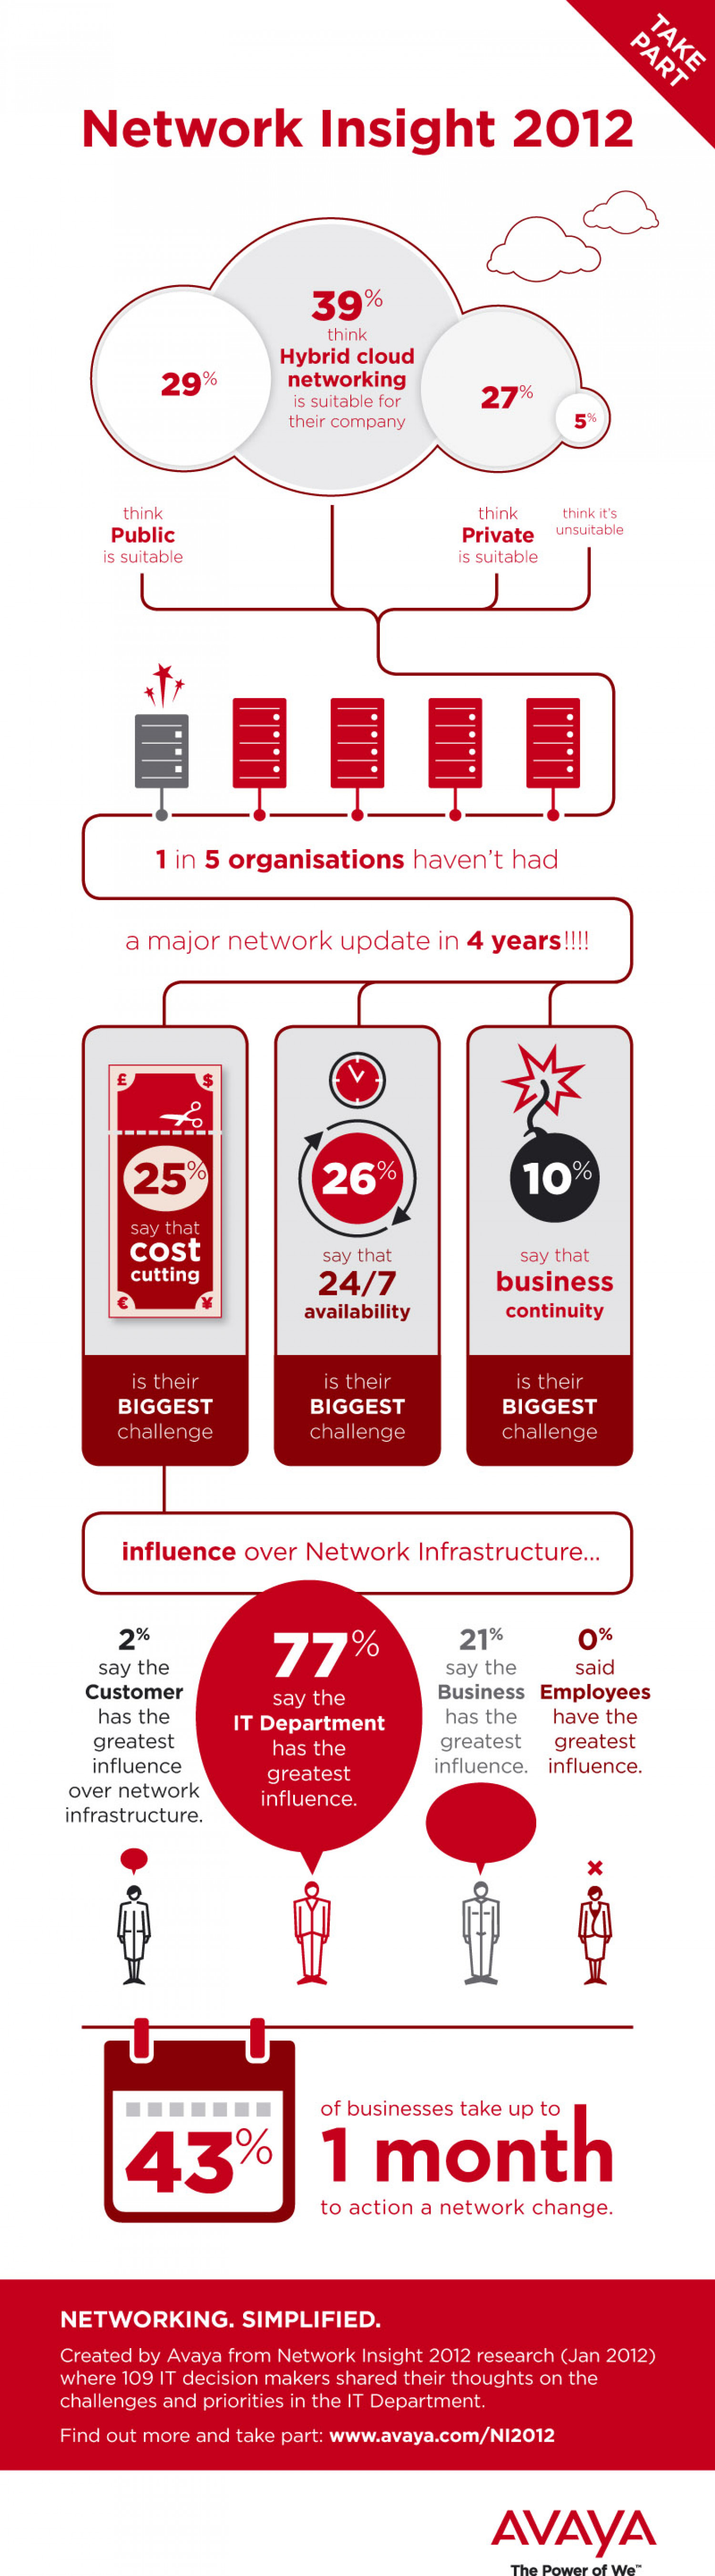 Network Insight 2012 Infographic